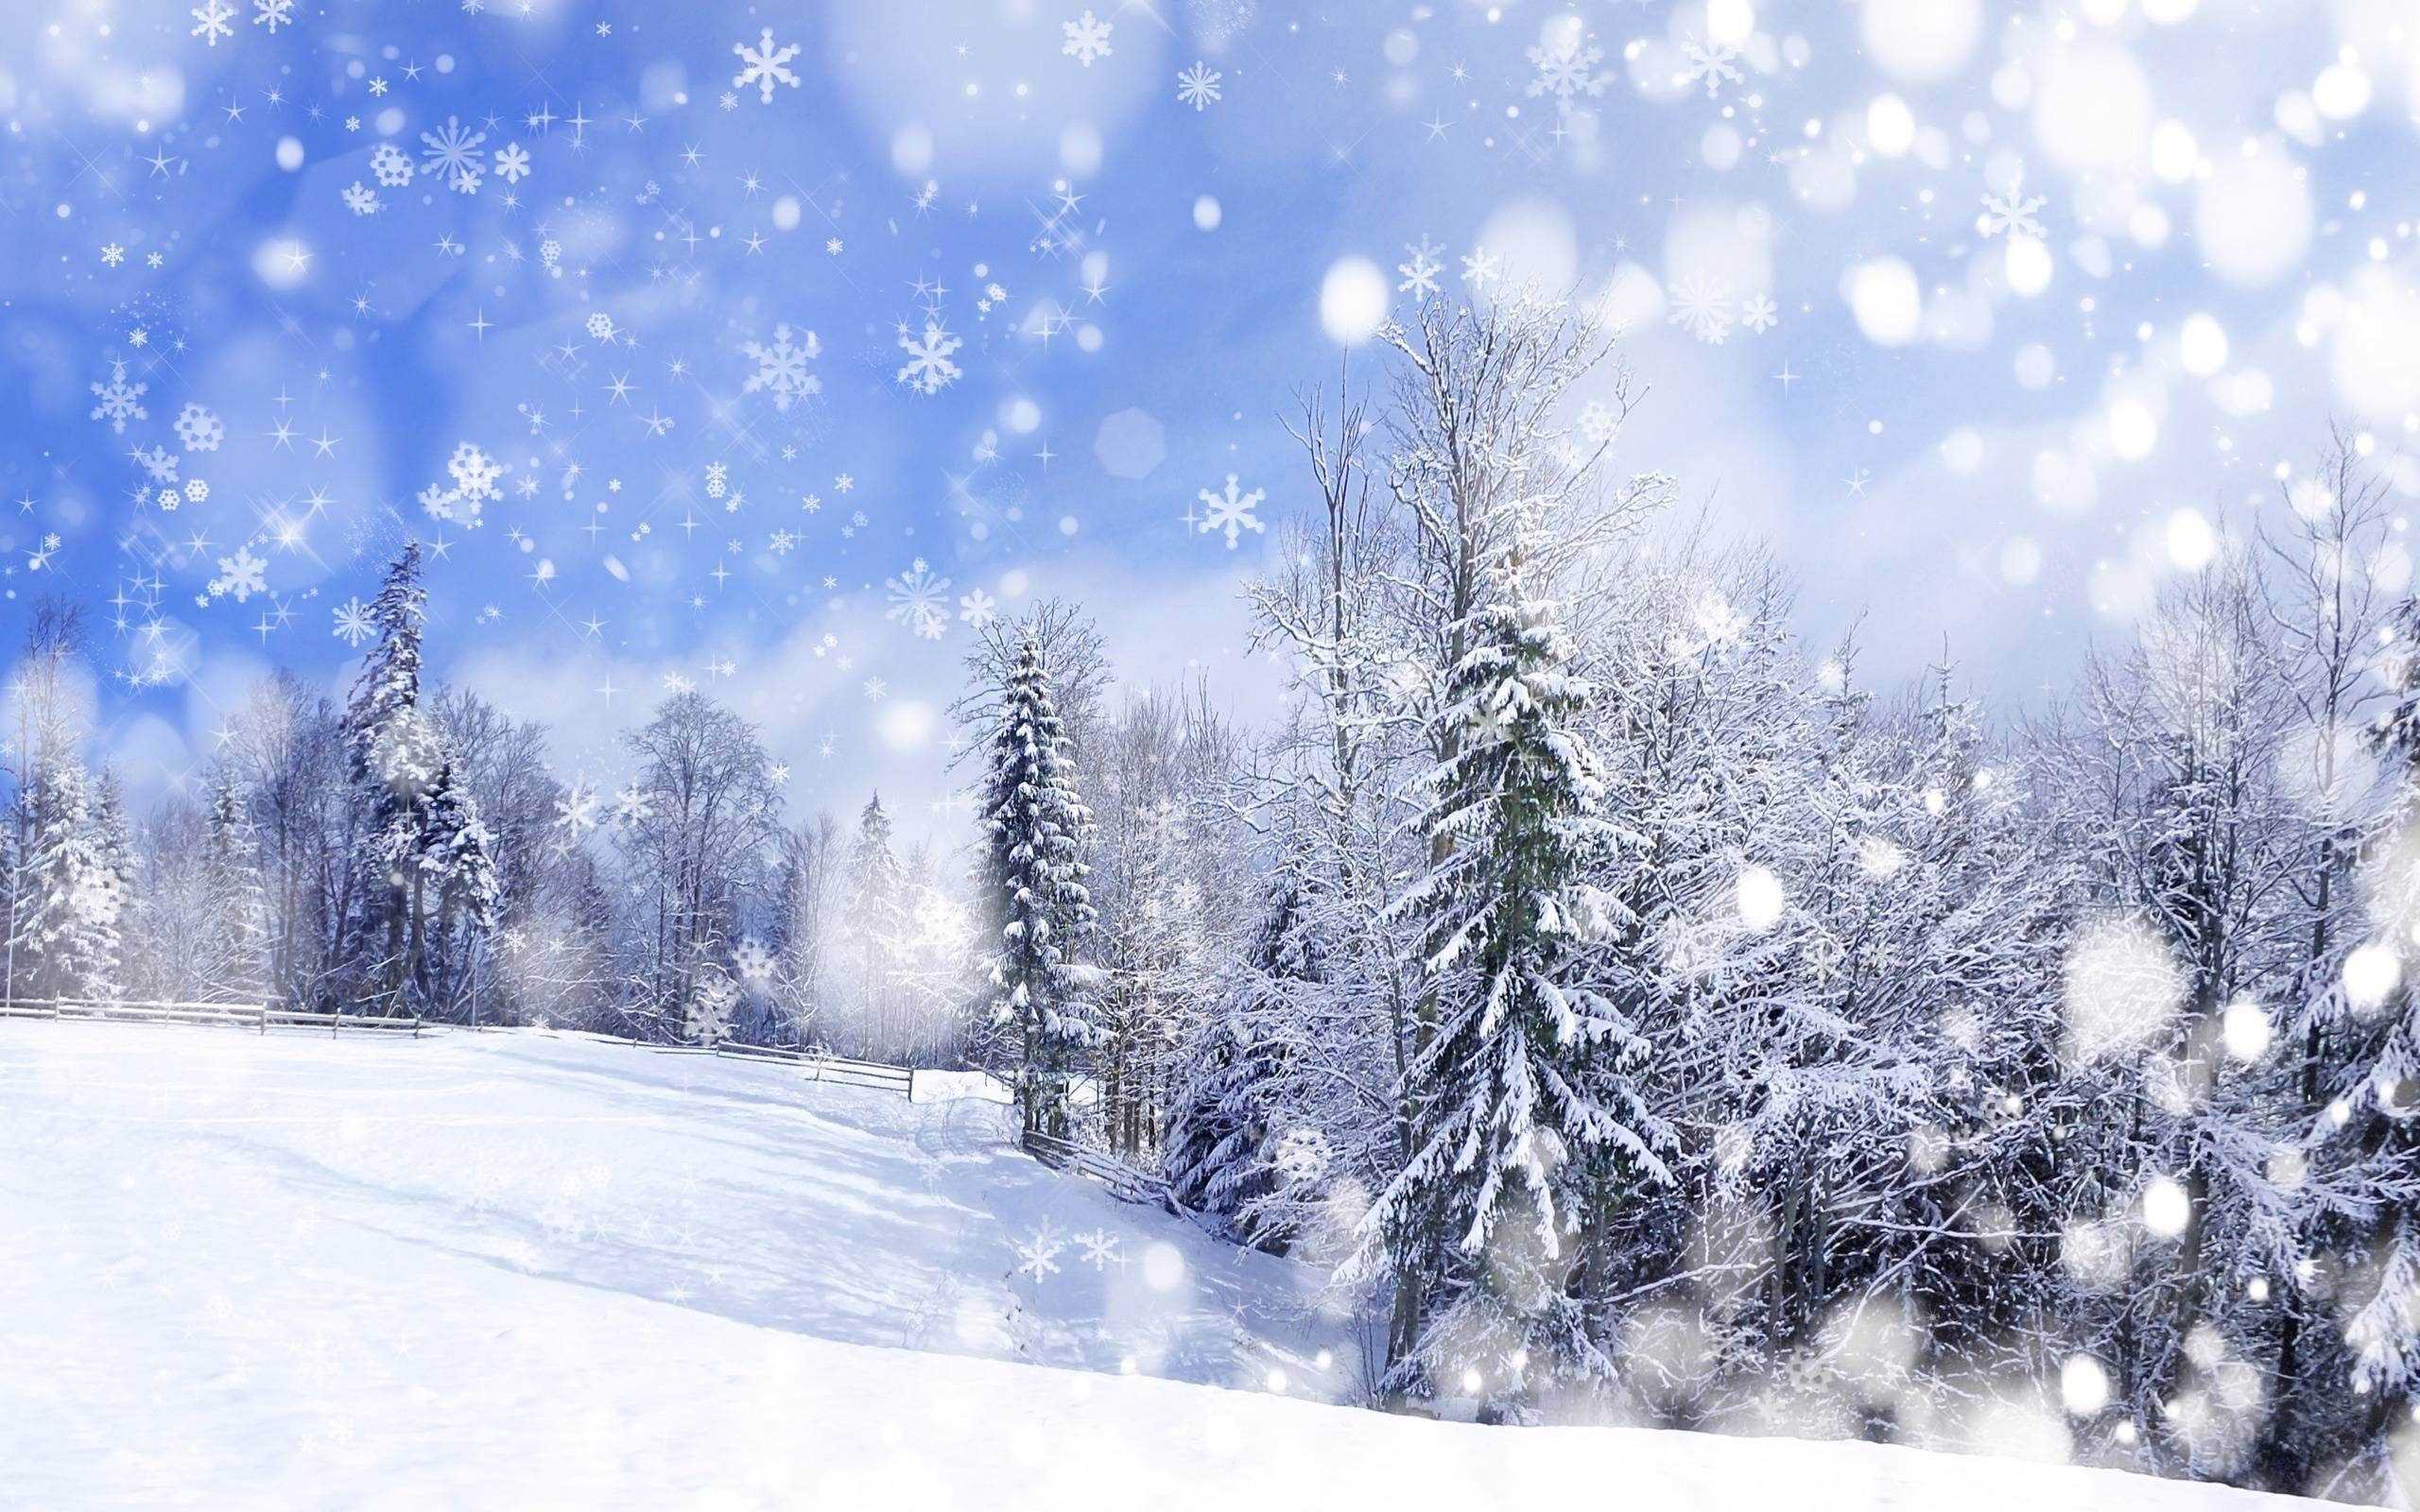 Snow Scenery Anime Wallpapers - Top Free Snow Scenery ...